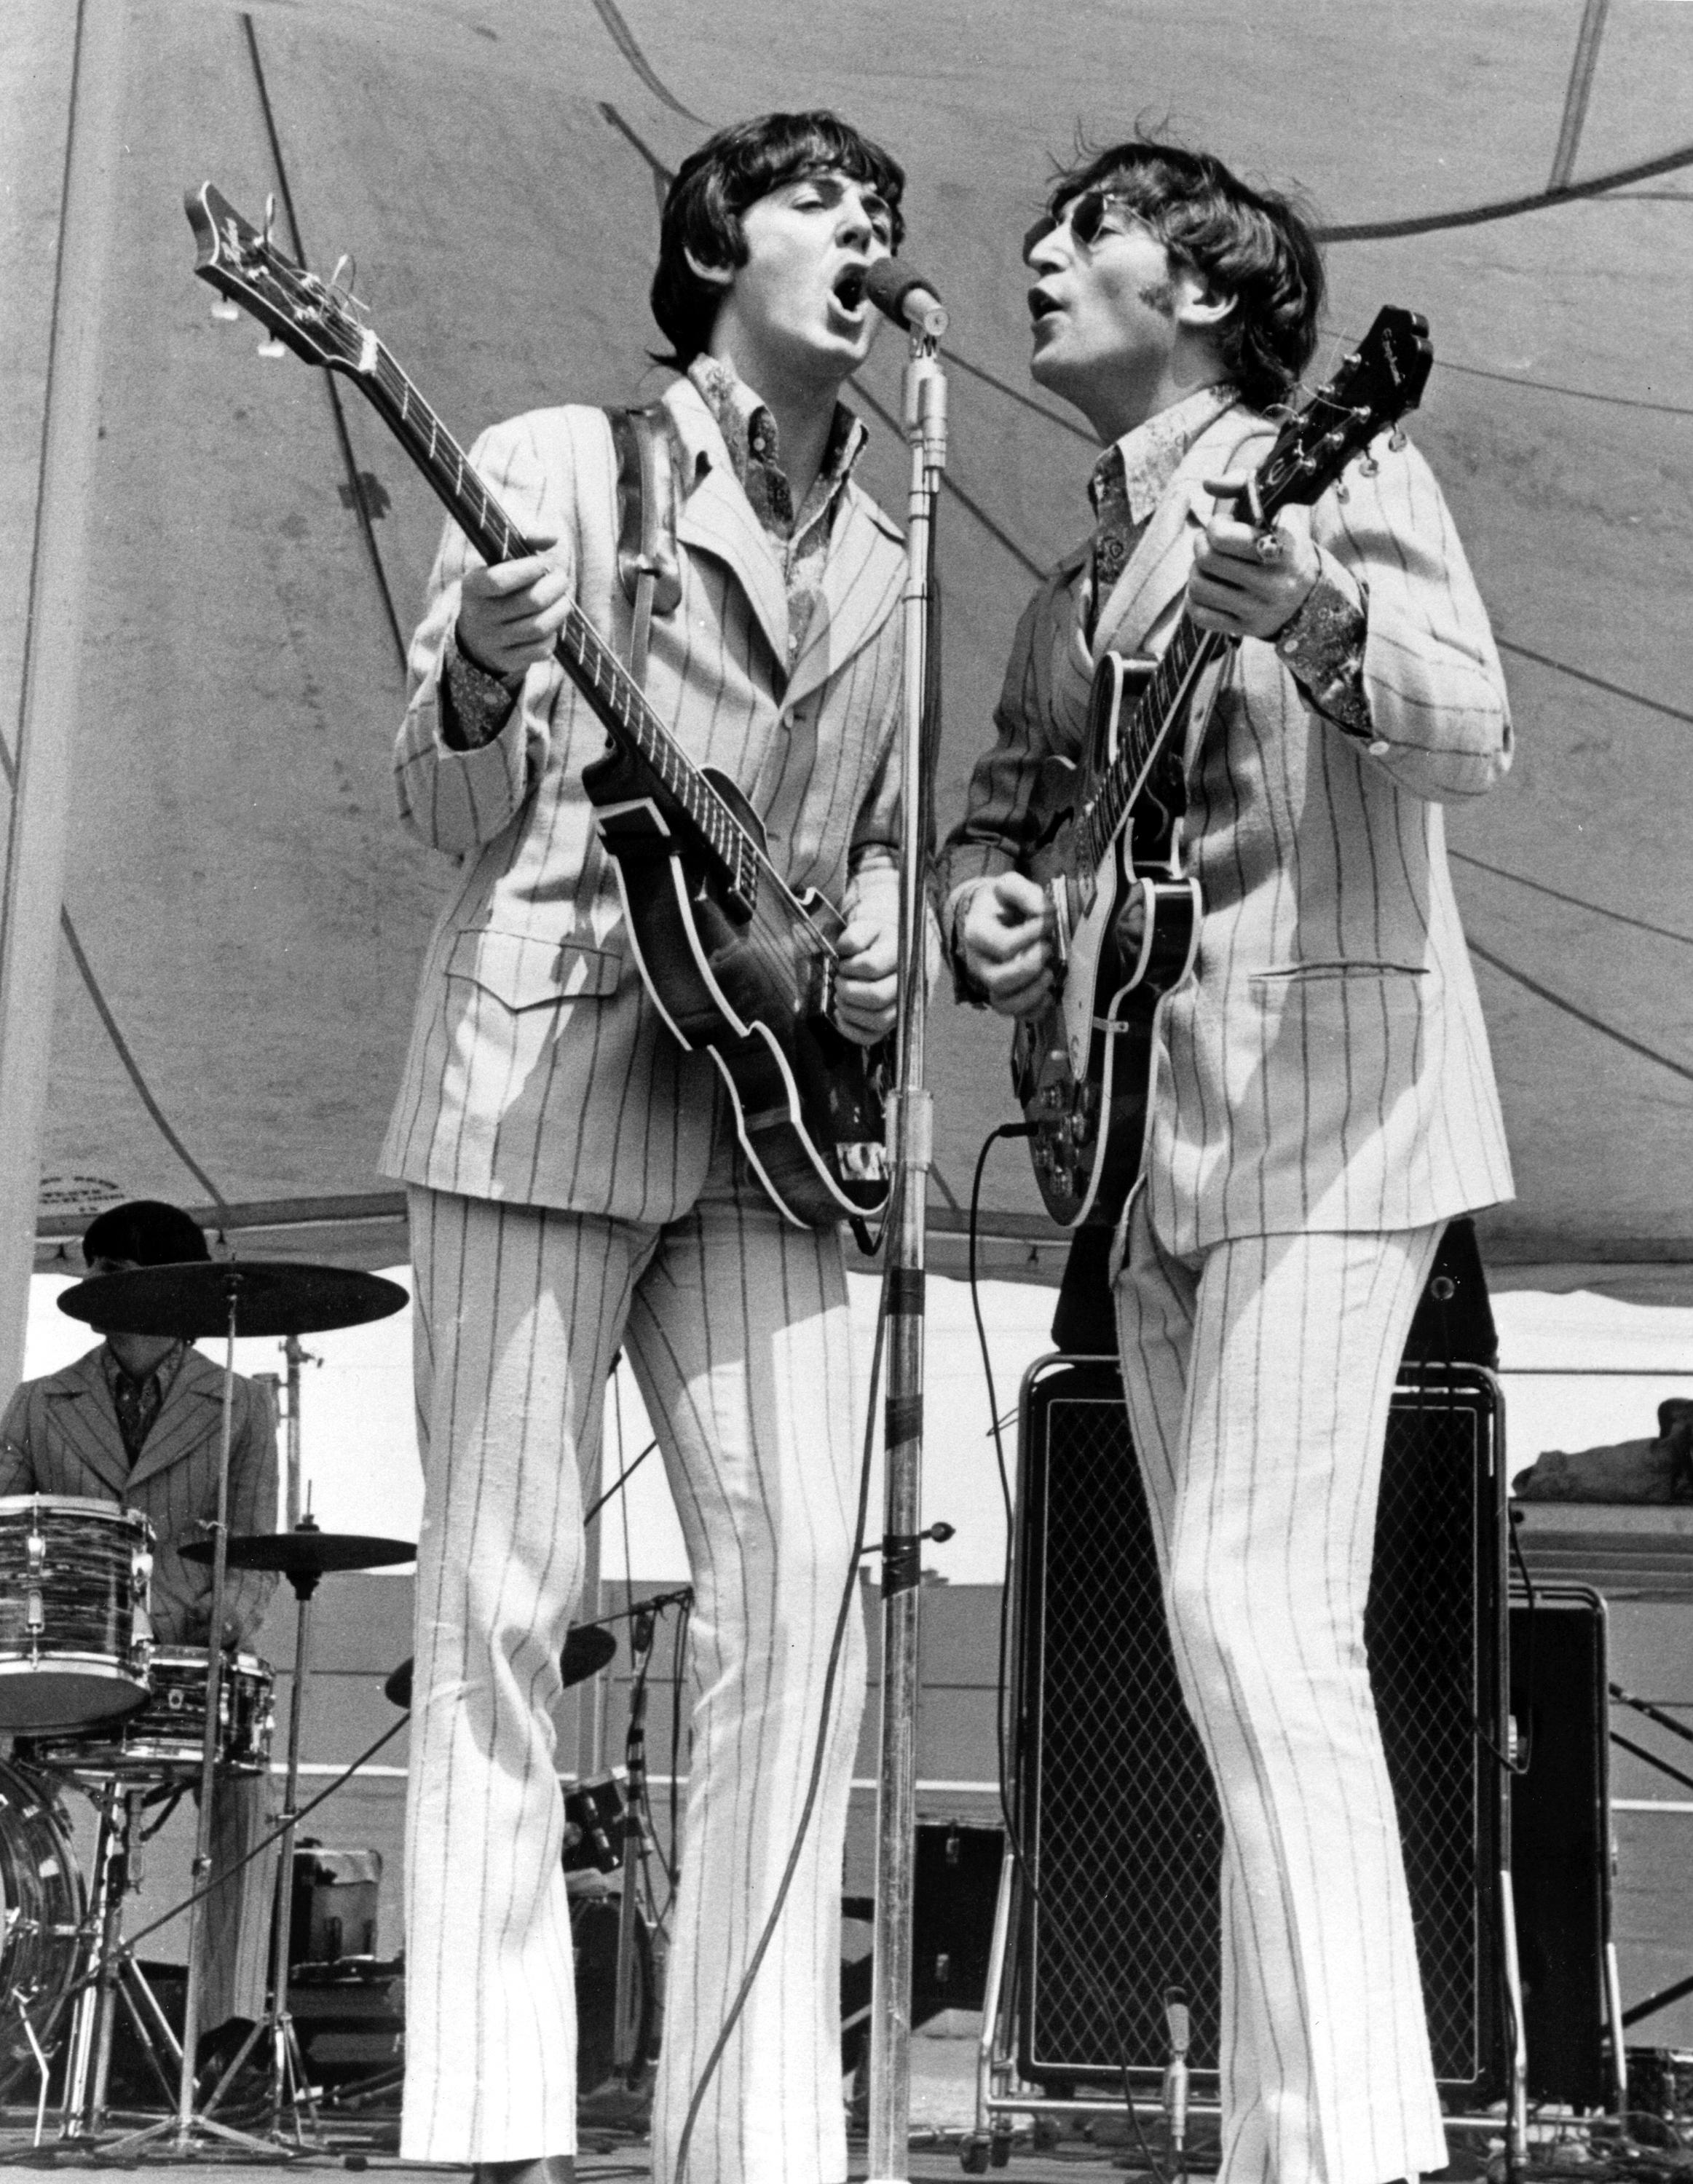 Paul McCartney And John Lennon On Stage At Crosley Field